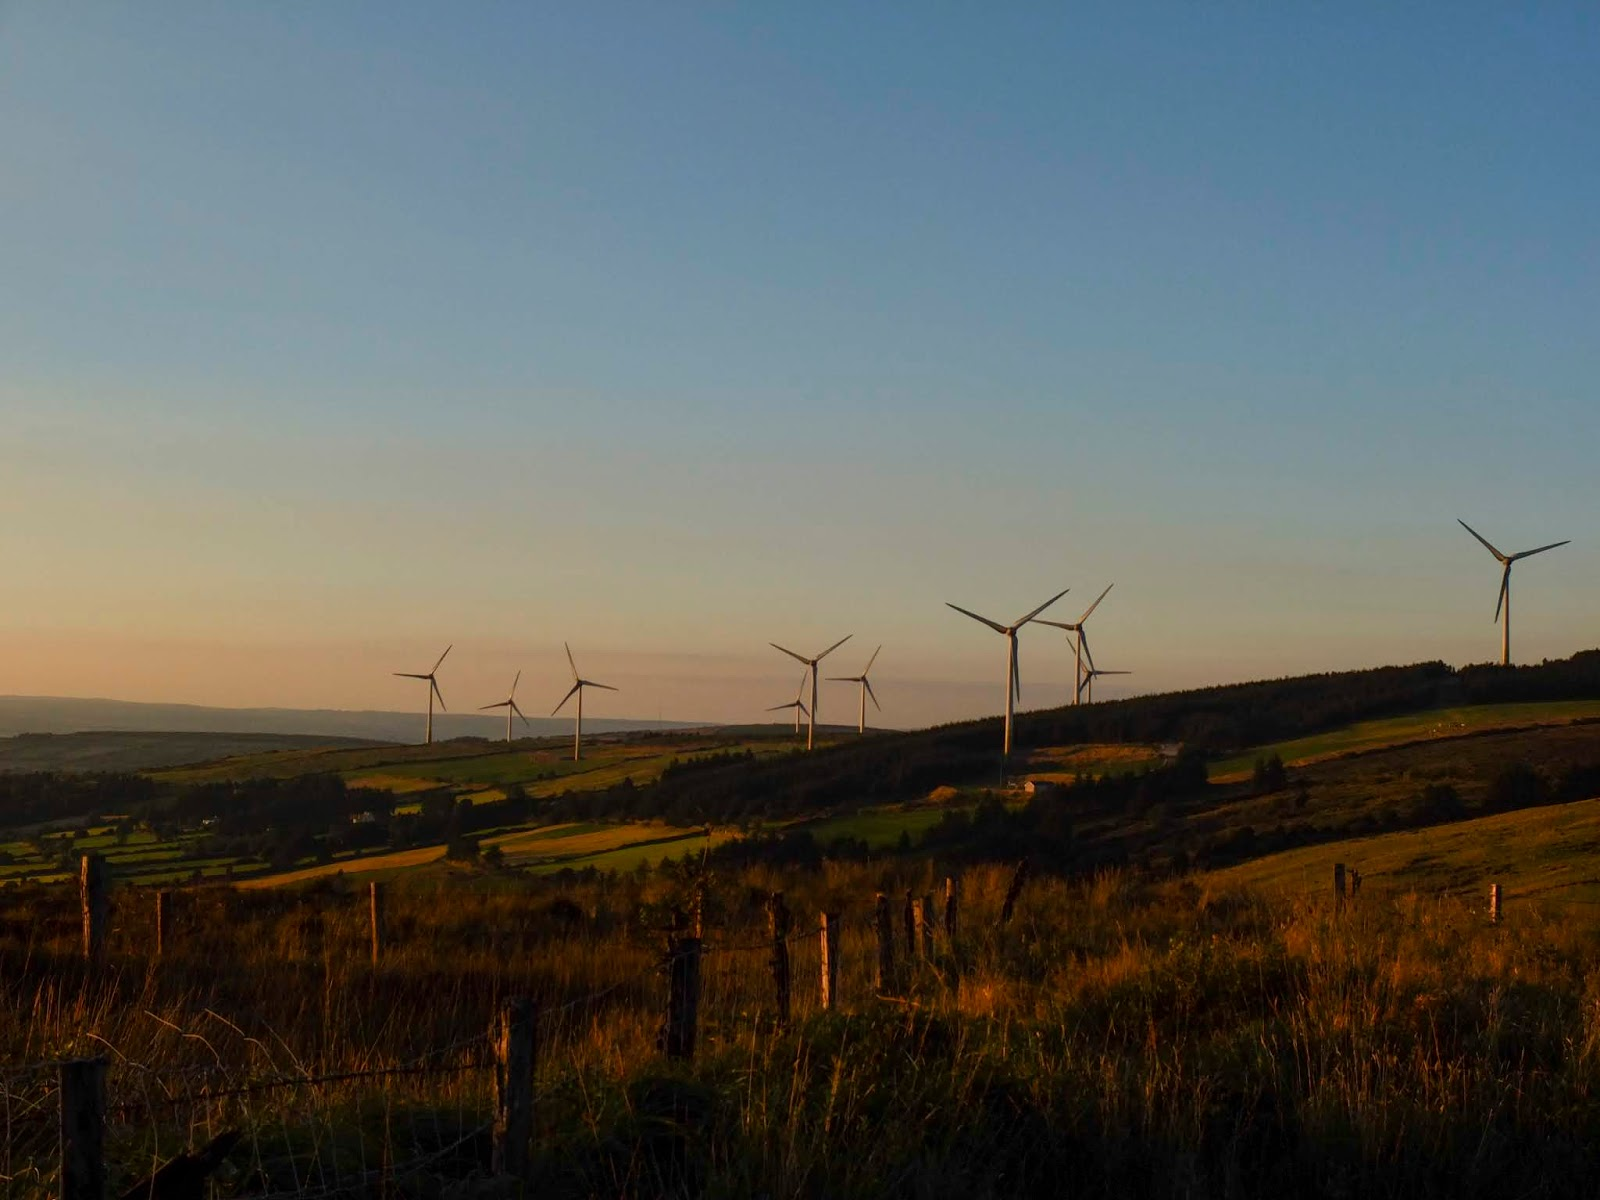 Windmills on a hillside in the Boggeragh Mountains during golden hour.